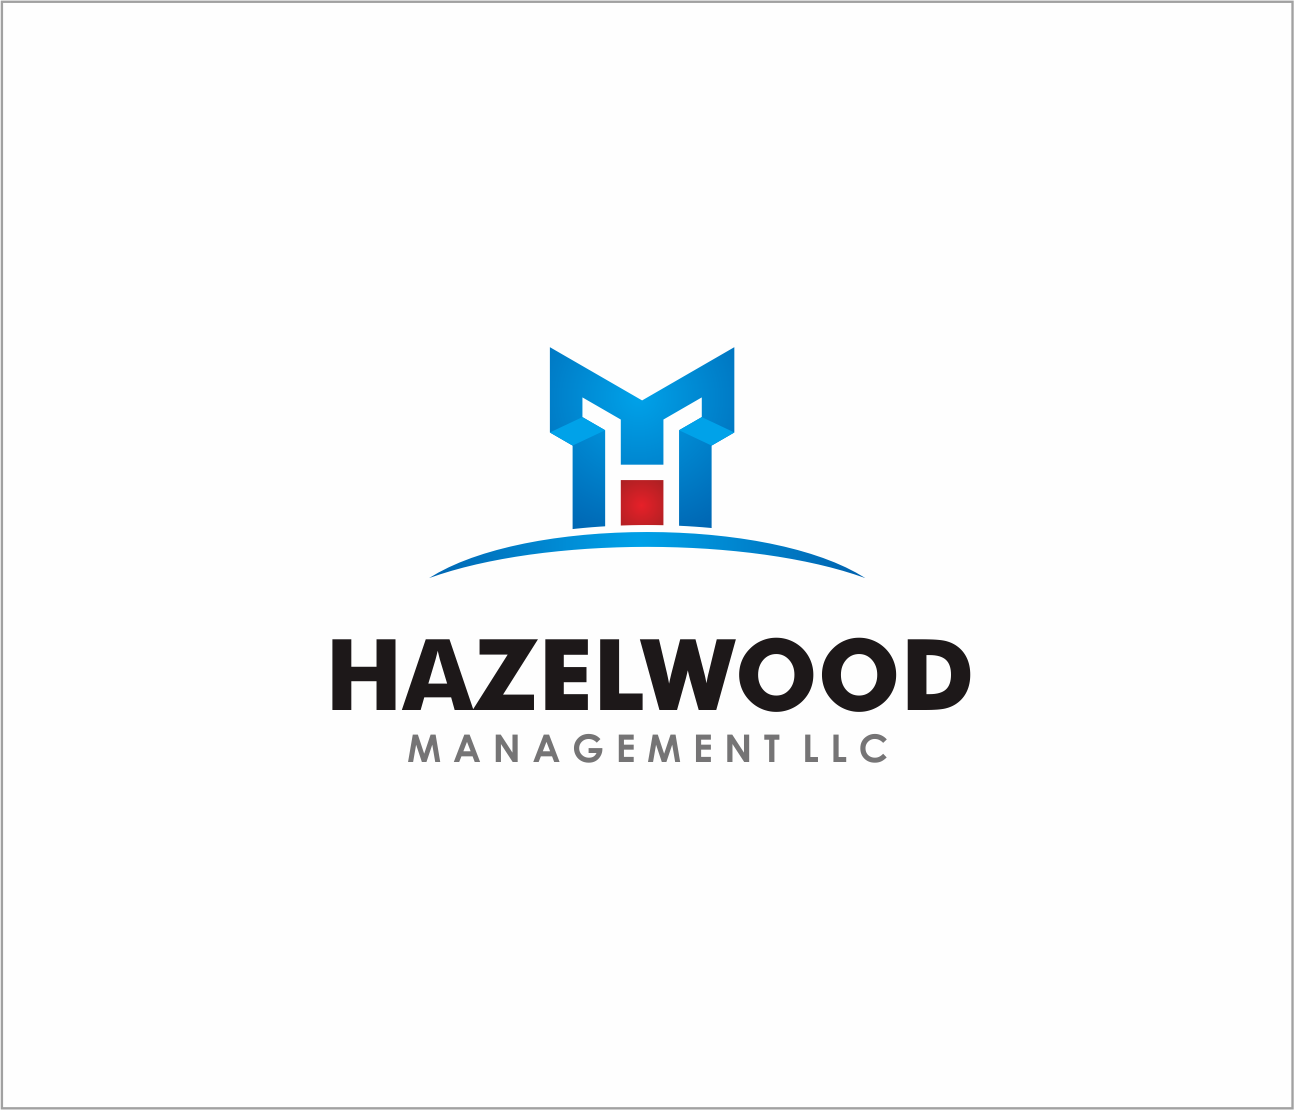 Logo Design by Armada Jamaluddin - Entry No. 67 in the Logo Design Contest Hazelwood Management LLC Logo Design.